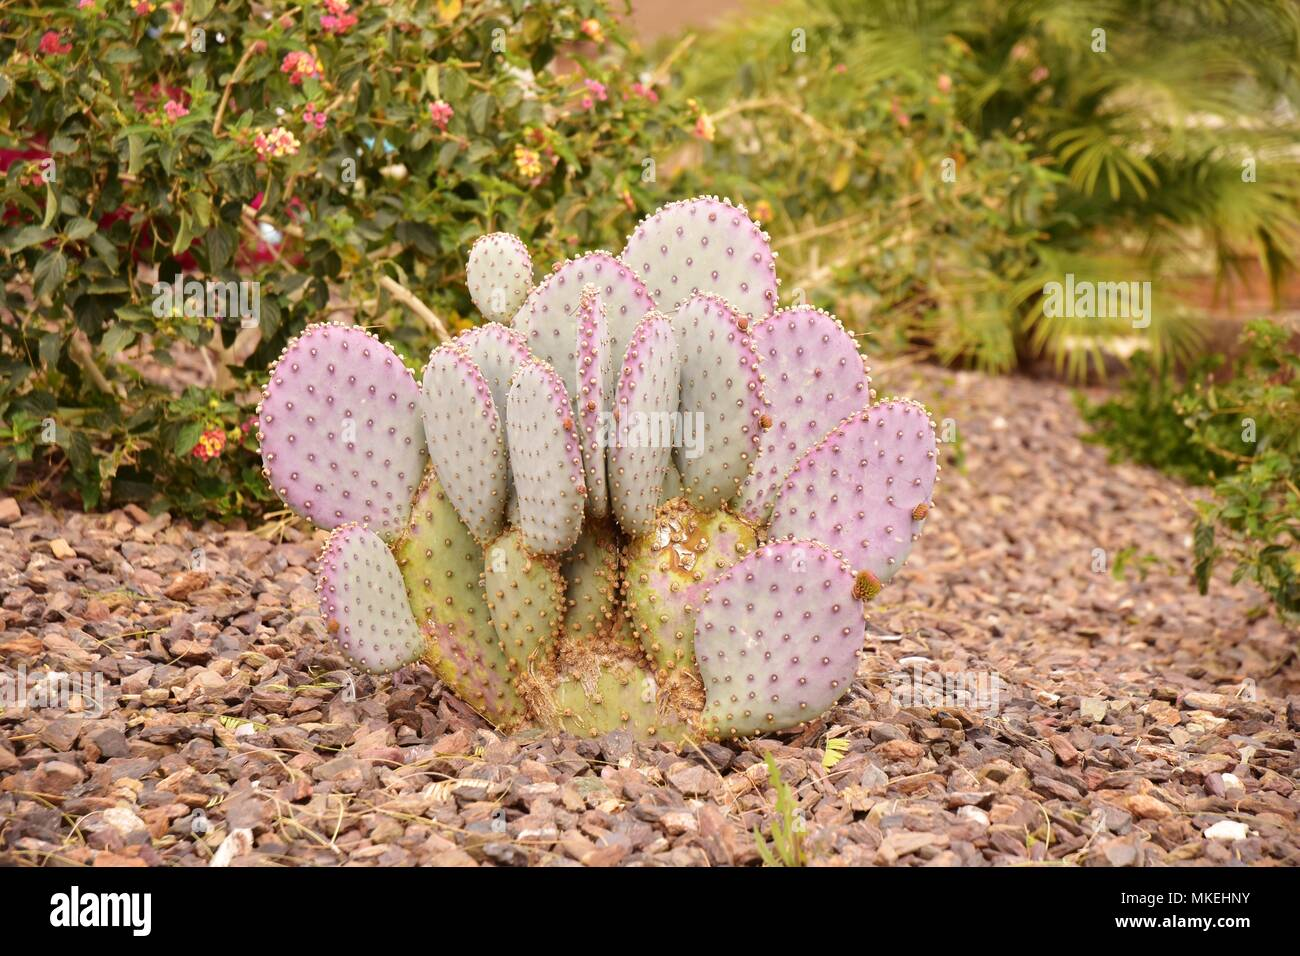 Some of the many unusual plants found in the Arizona desert. We were in Queen Creek, southeast of Phoenix. Taken at 1:00 PM. Stock Photo